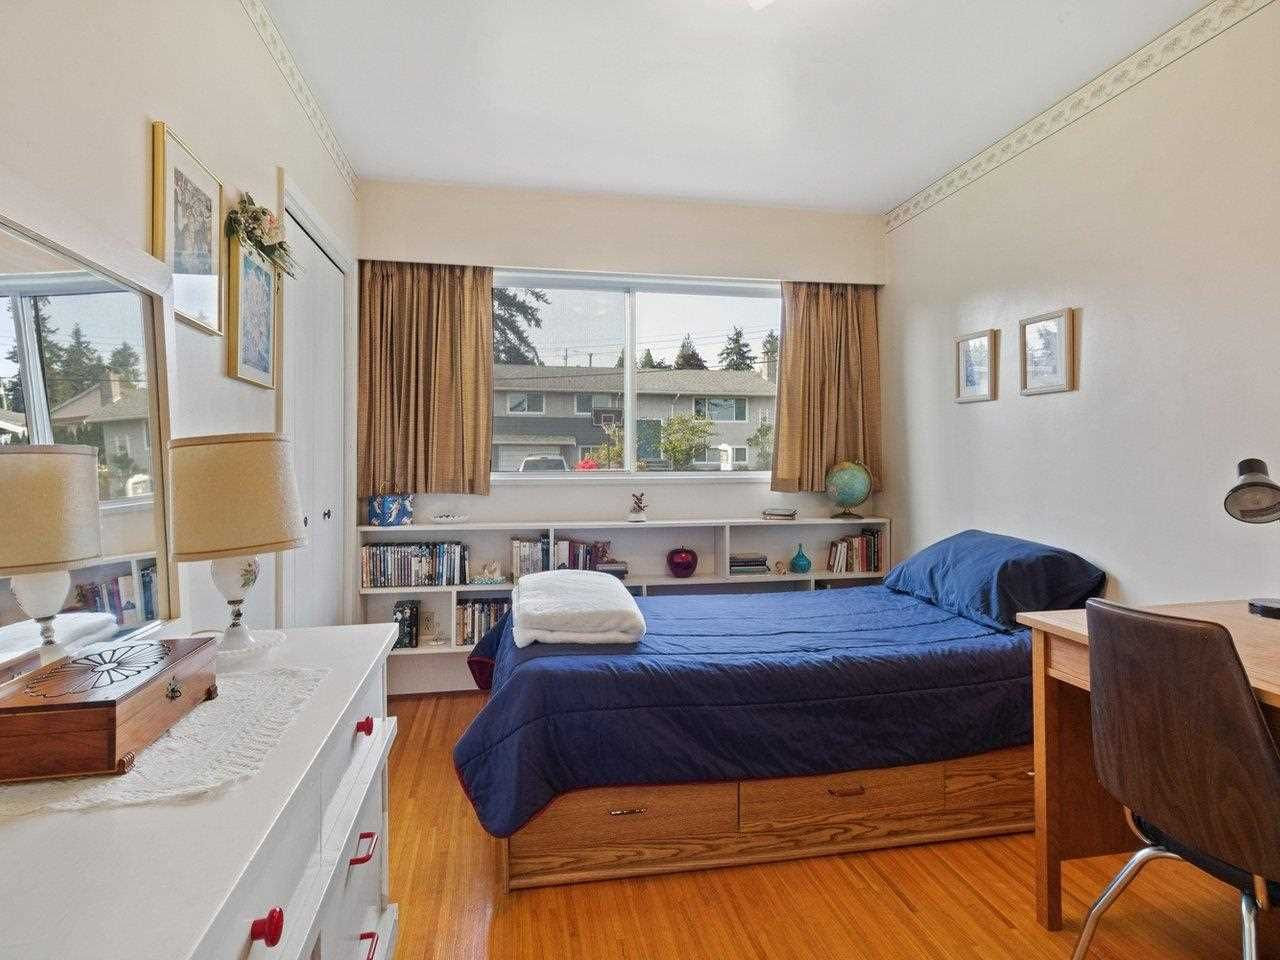 Photo 15: Photos: 1510 CHARLAND Avenue in Coquitlam: Central Coquitlam House for sale : MLS®# R2577681